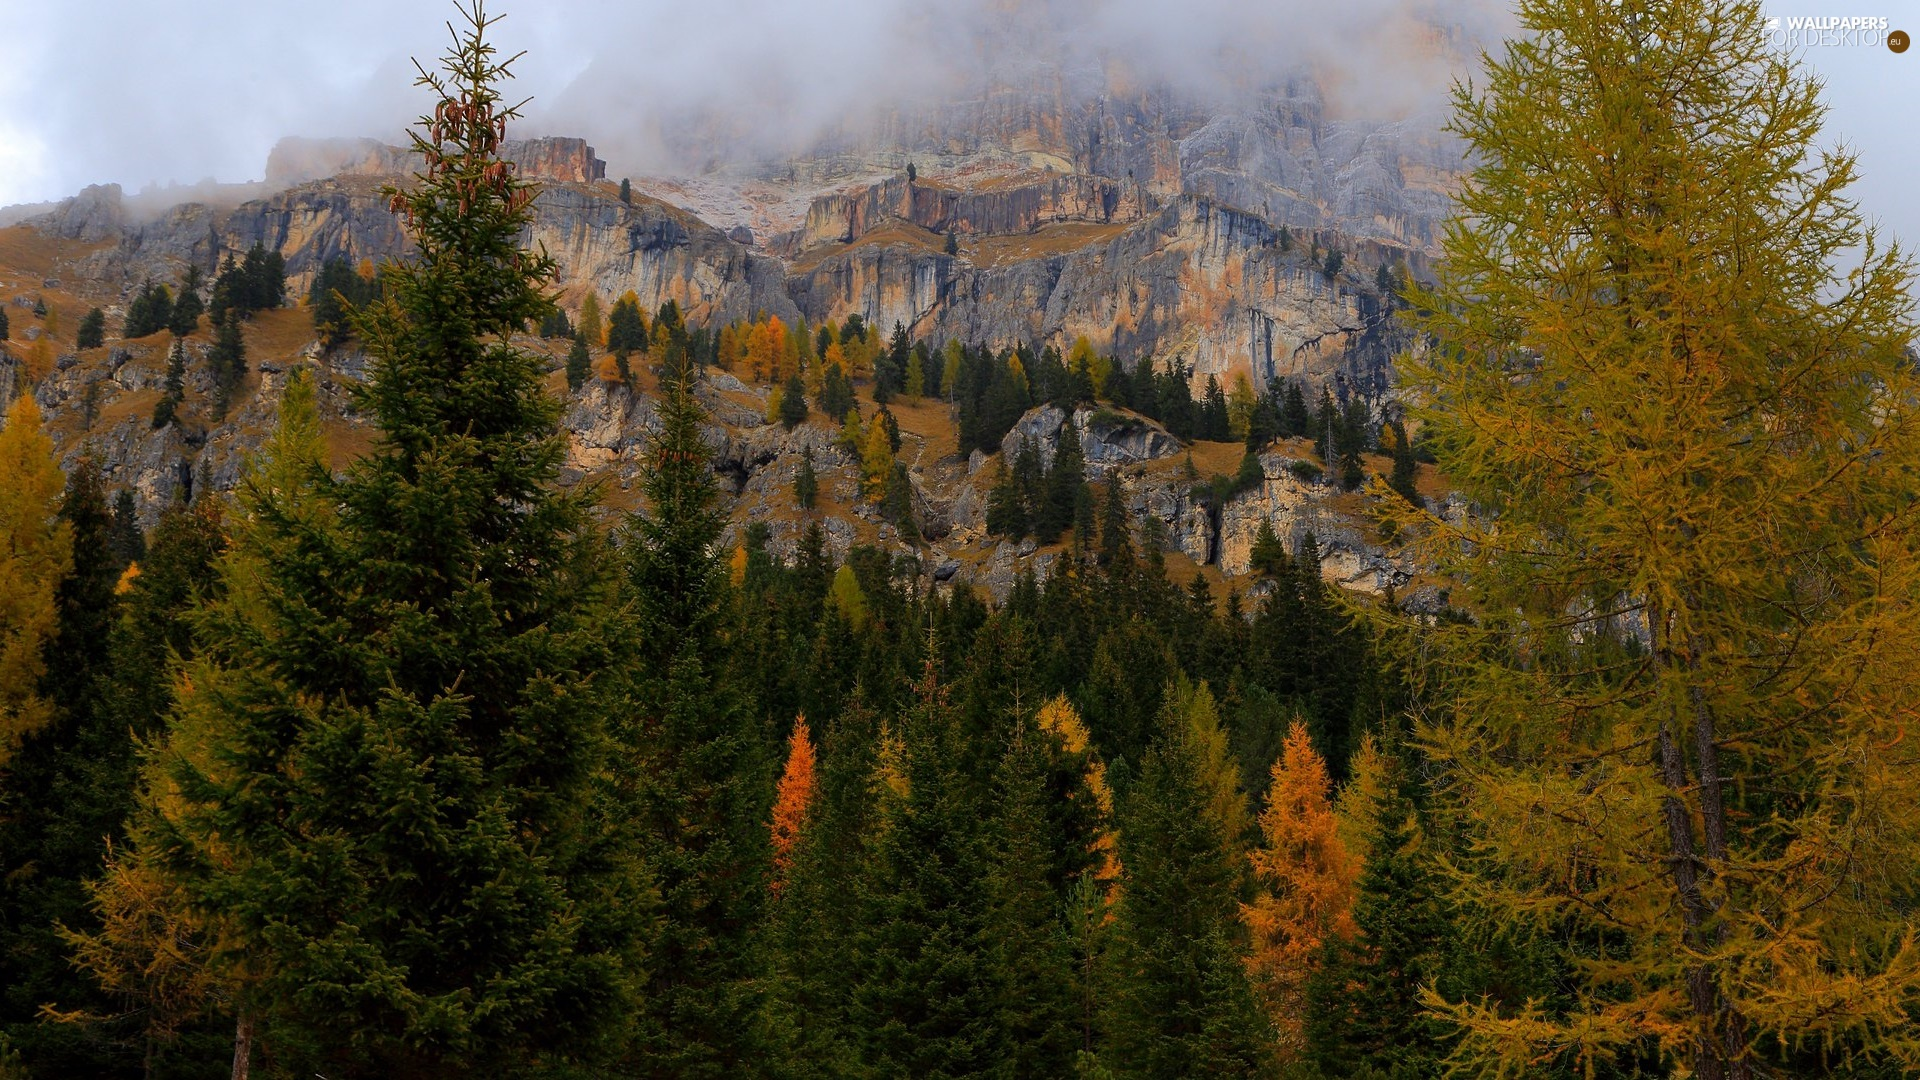 Fog, Mountains, viewes, Spruces, trees, rocks